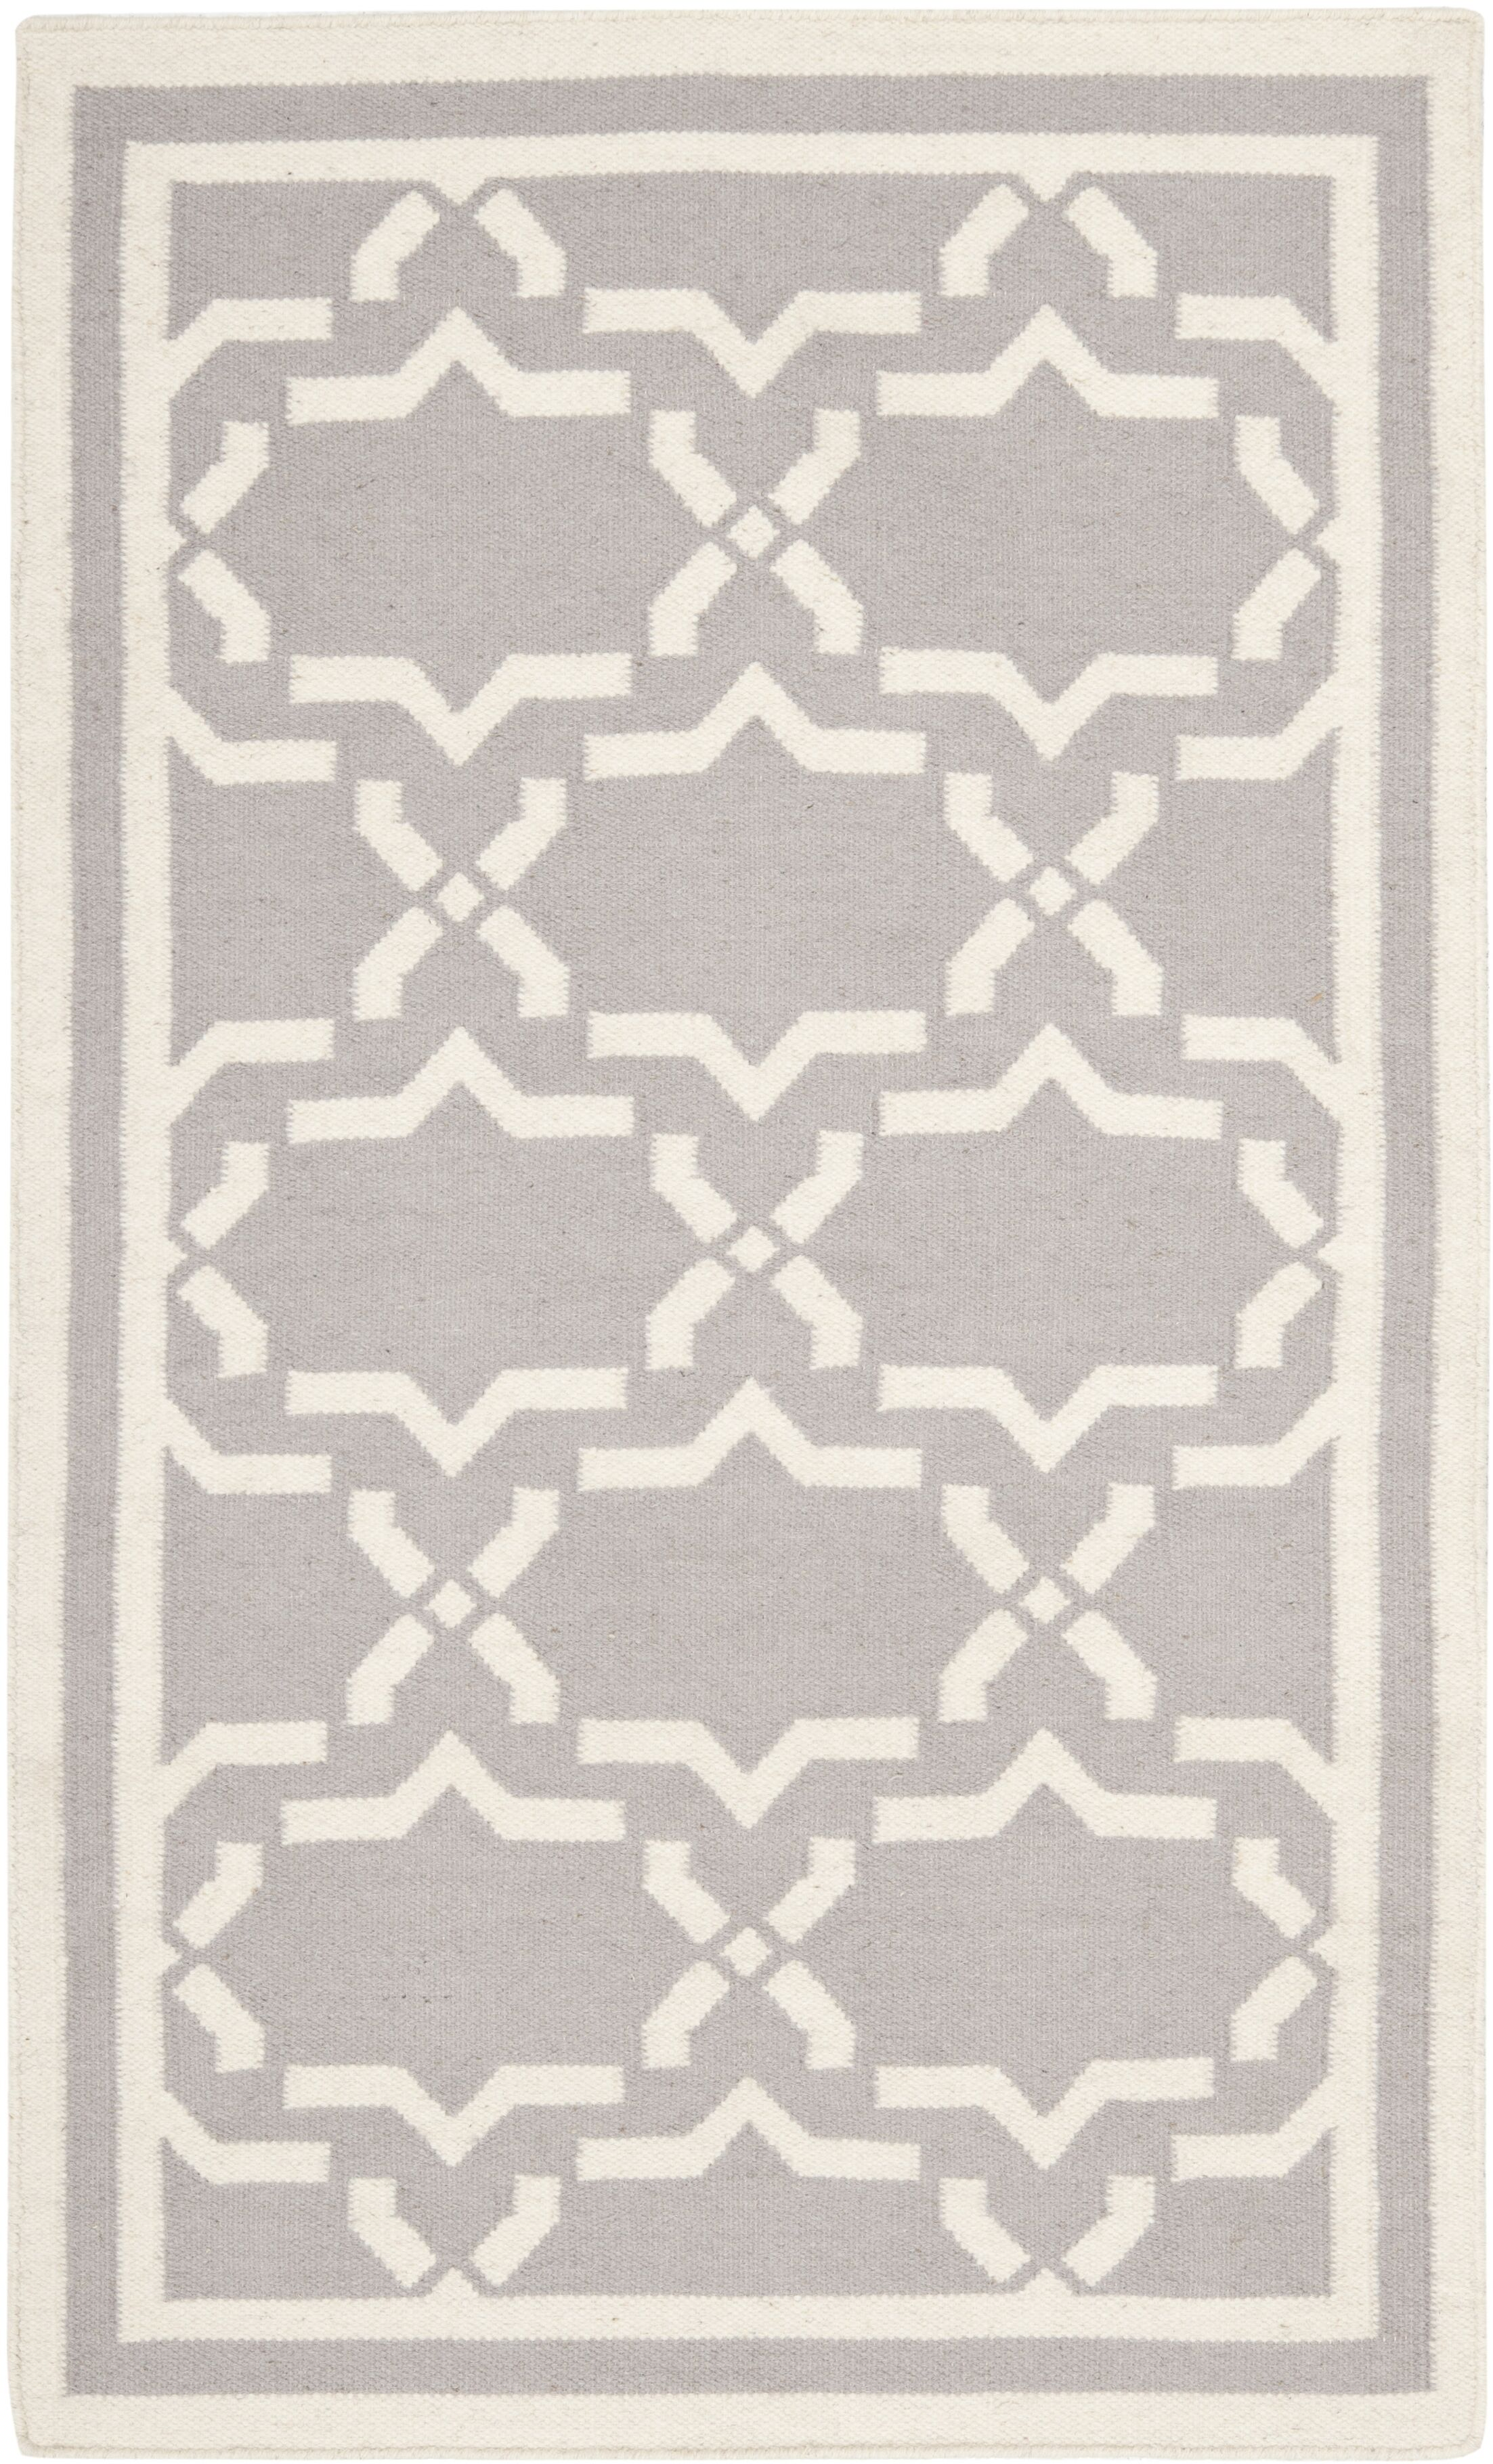 Dhurries Hand-Woven Wool Purple/Ivory Area Rug Rug Size: Rectangle 8' x 10'